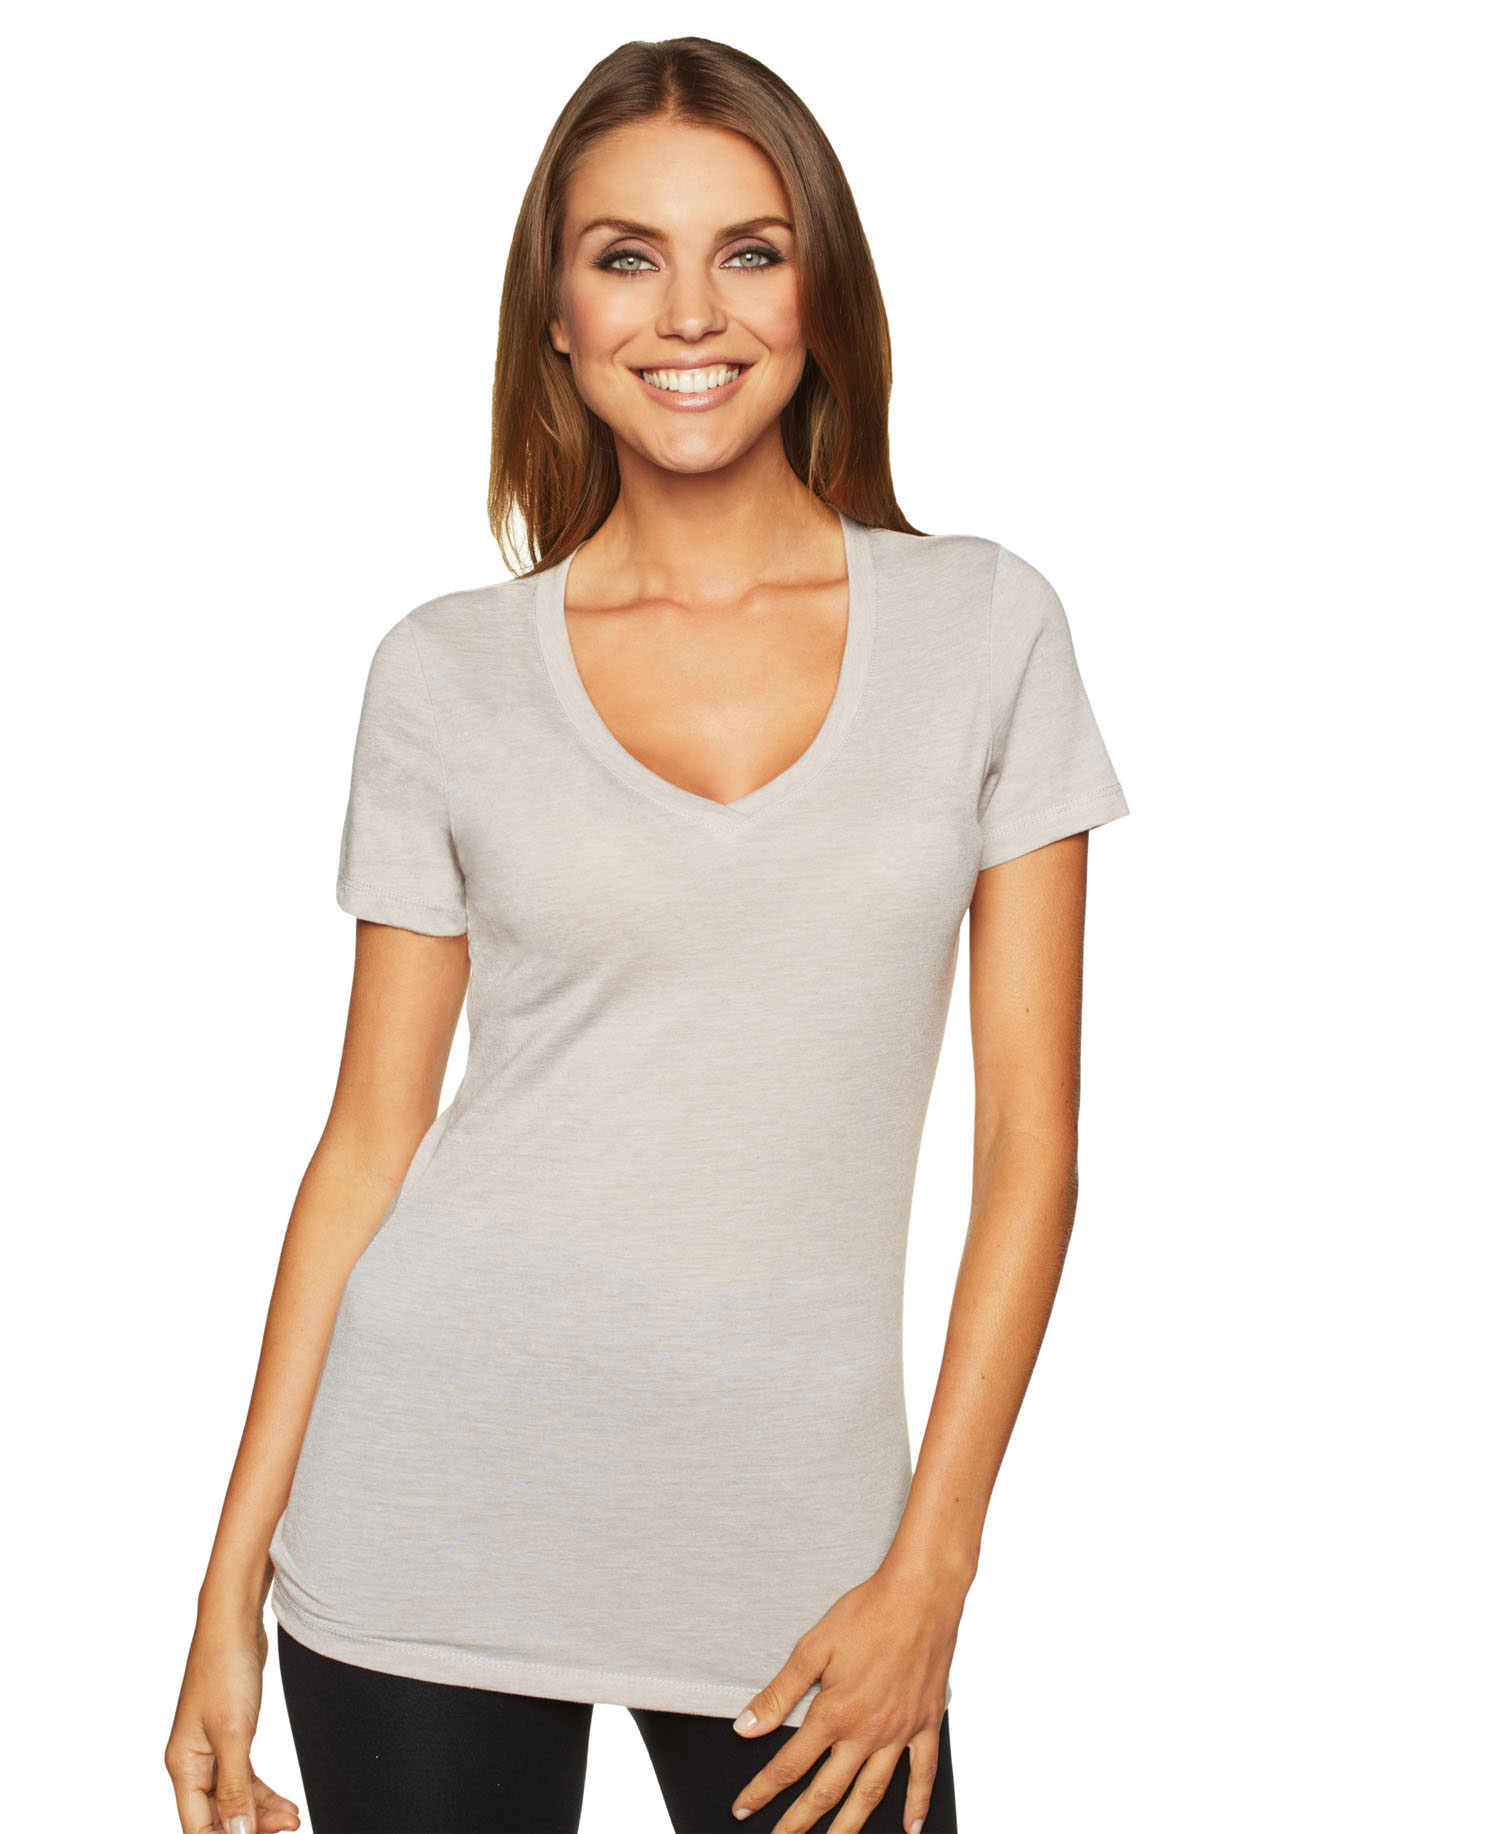 Next Level - Nl6044 V Neck Poly/Cotton Tee